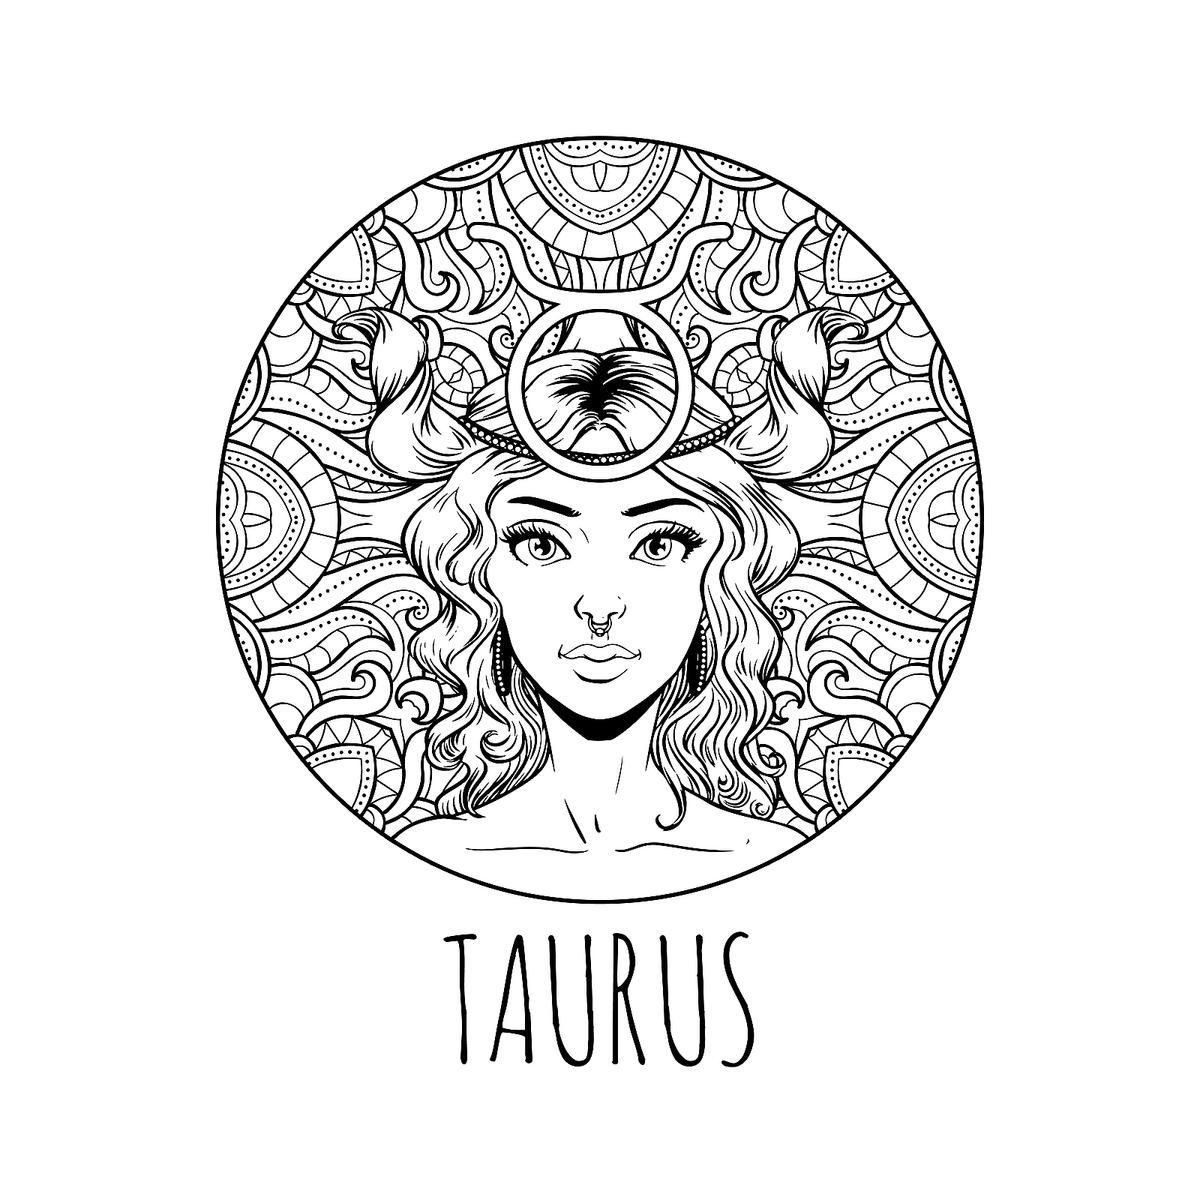 Gemini zodiac sign coloring page | Free Printable Coloring Pages | 1200x1200